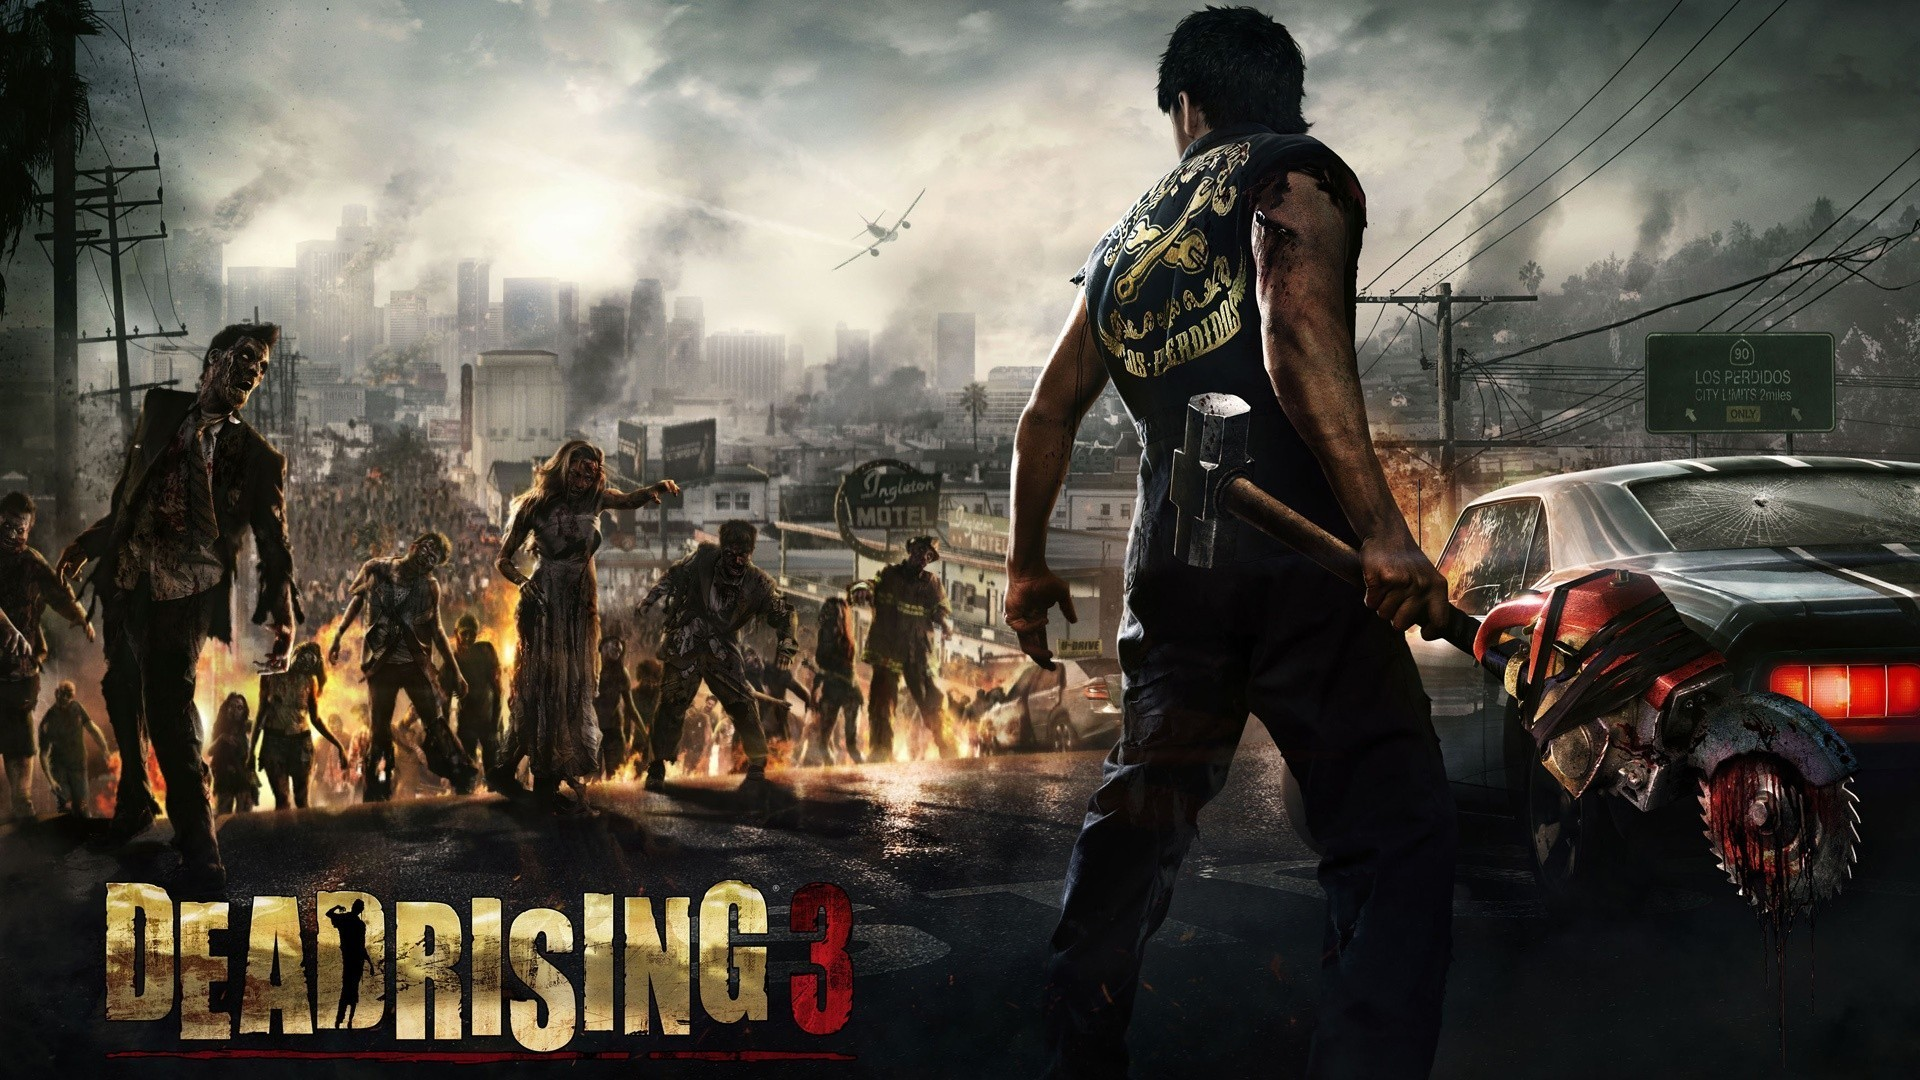 Capcom dead rising xbox one 3 game wallpaper ... Xbox One Game Wallpaper